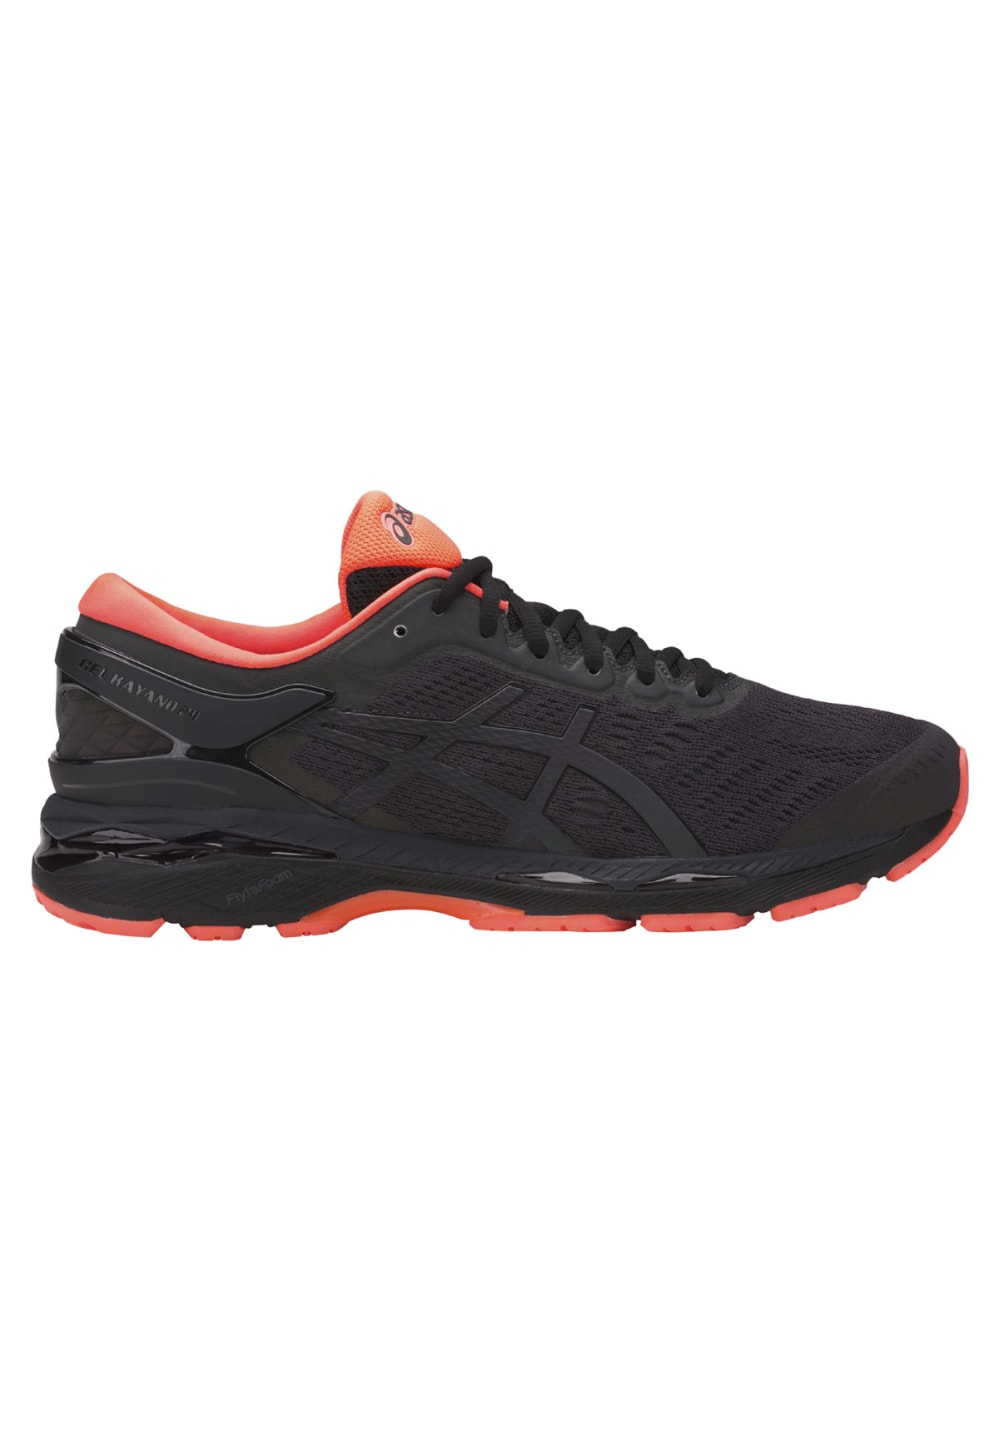 asics gel kayano 24 lite show running shoes for men black 21run. Black Bedroom Furniture Sets. Home Design Ideas